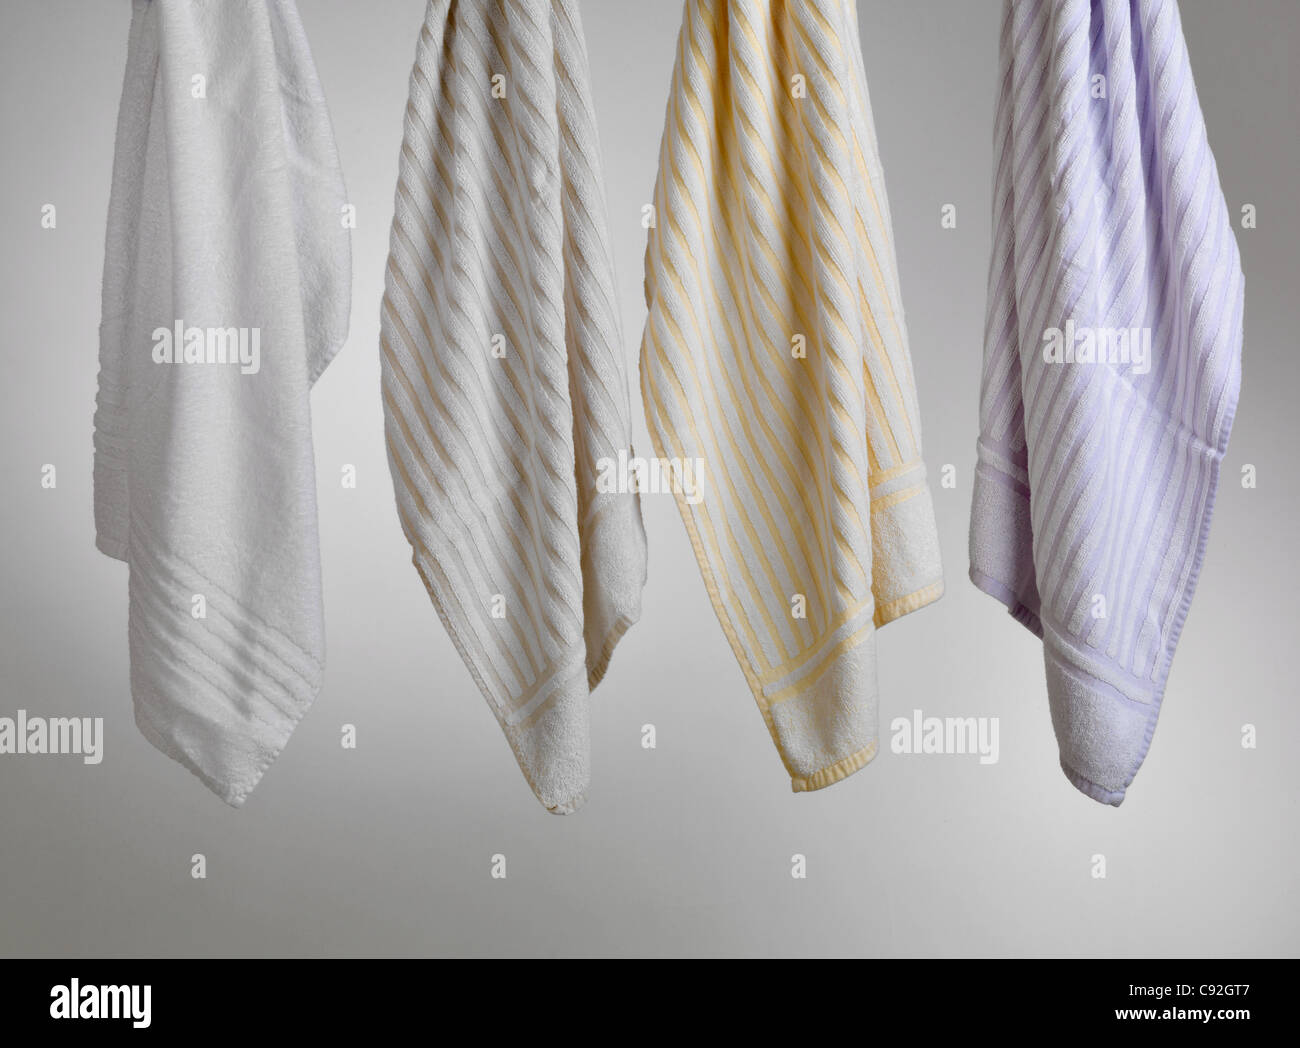 white violet and yellow striped clean and dry towel on gray background Stock Photo